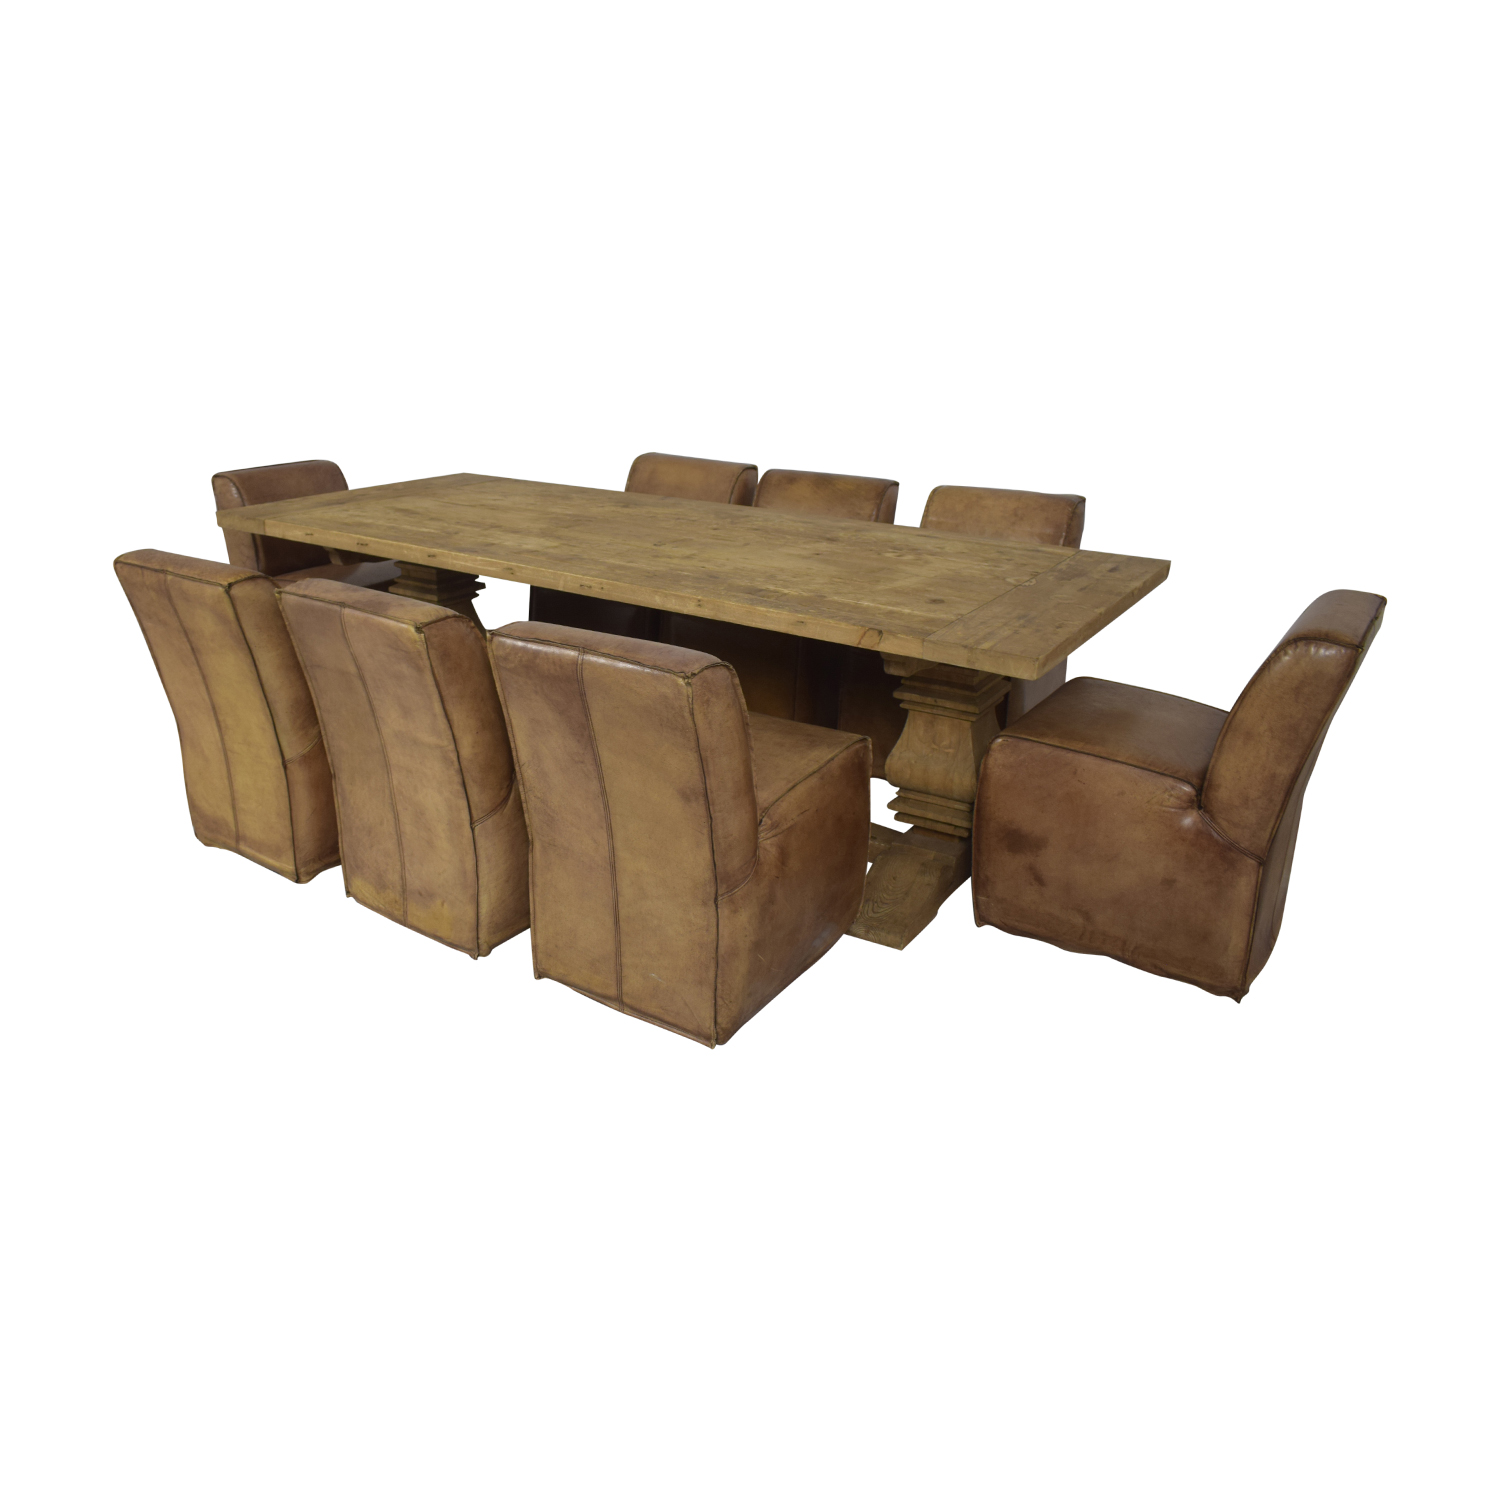 Rustic Extendable Table with Tan Chairs used